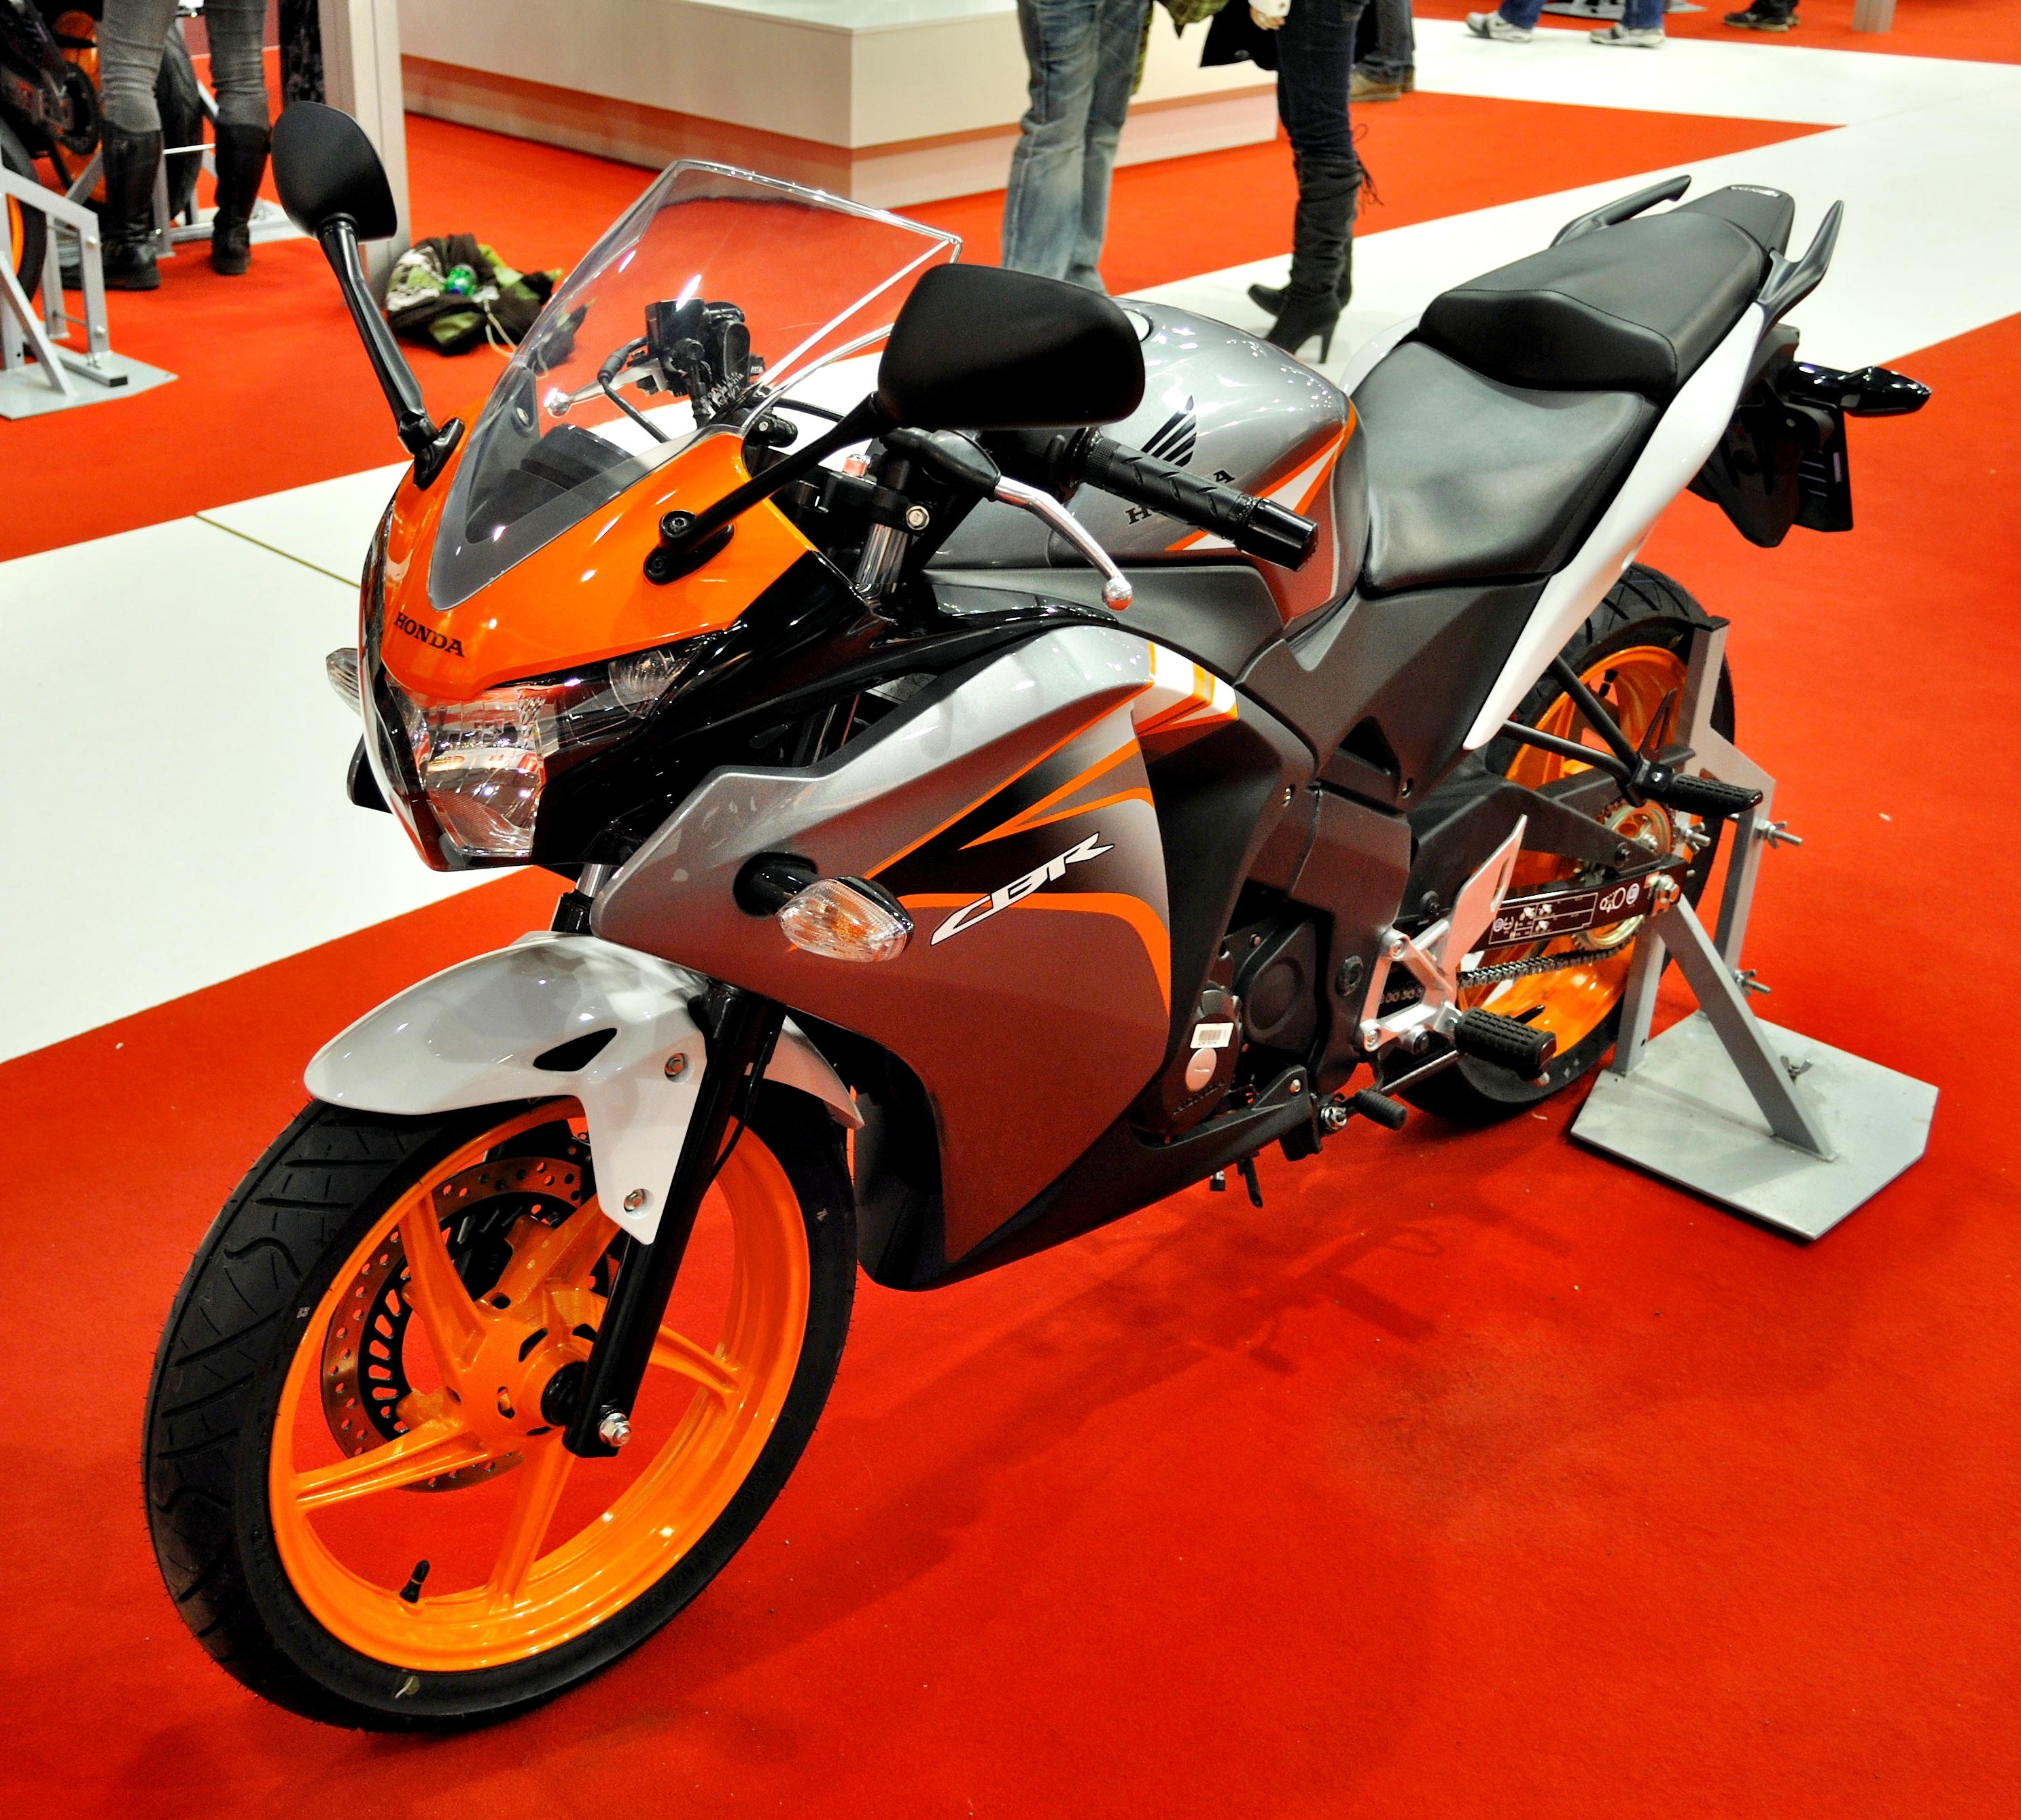 File 2011 Honda Cbr125r Orange Gray Motosalon Jpg Wikimedia Commons